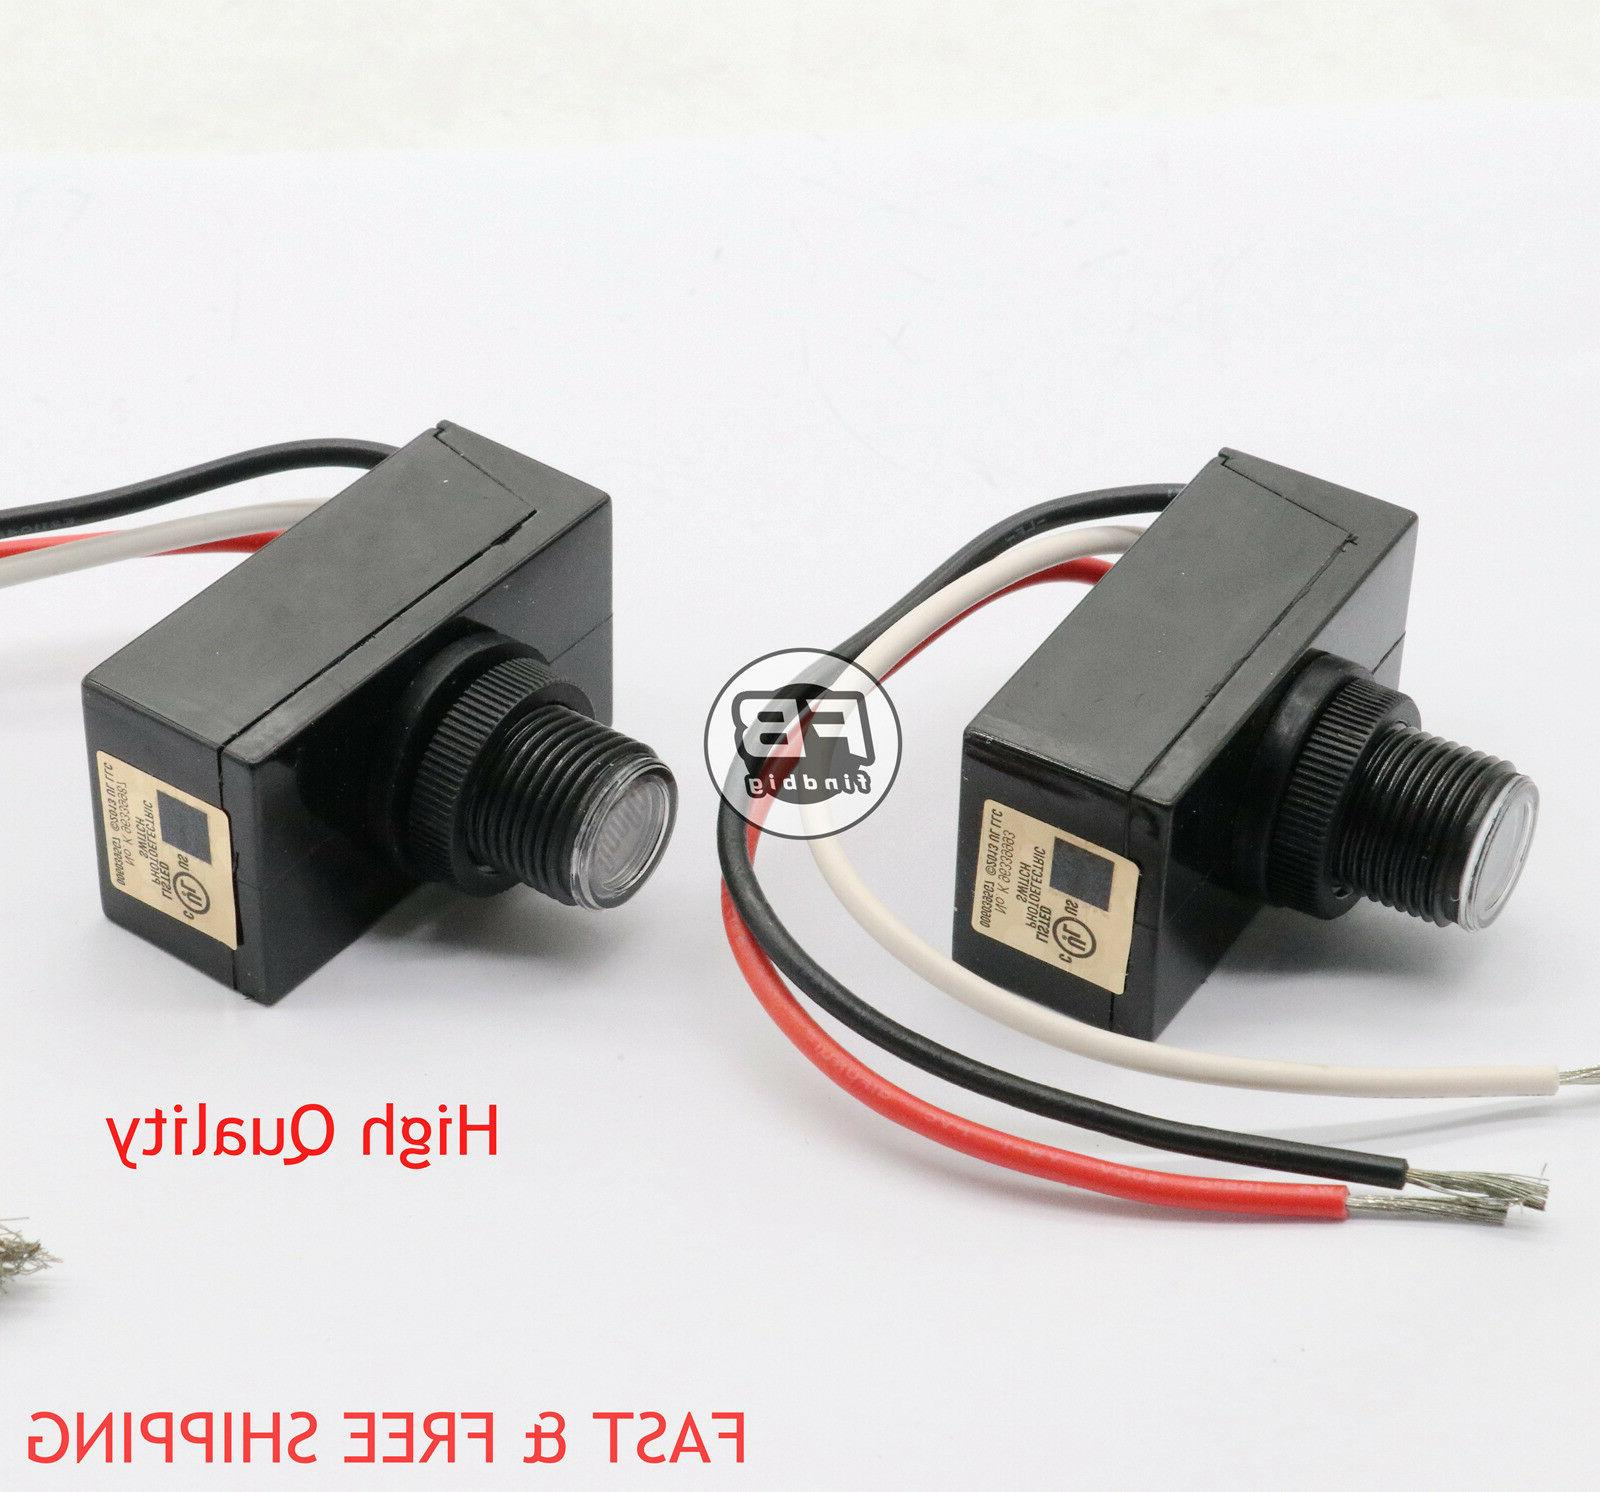 Outdoor Electric Resistor Photocell Light Control Sensor Swi